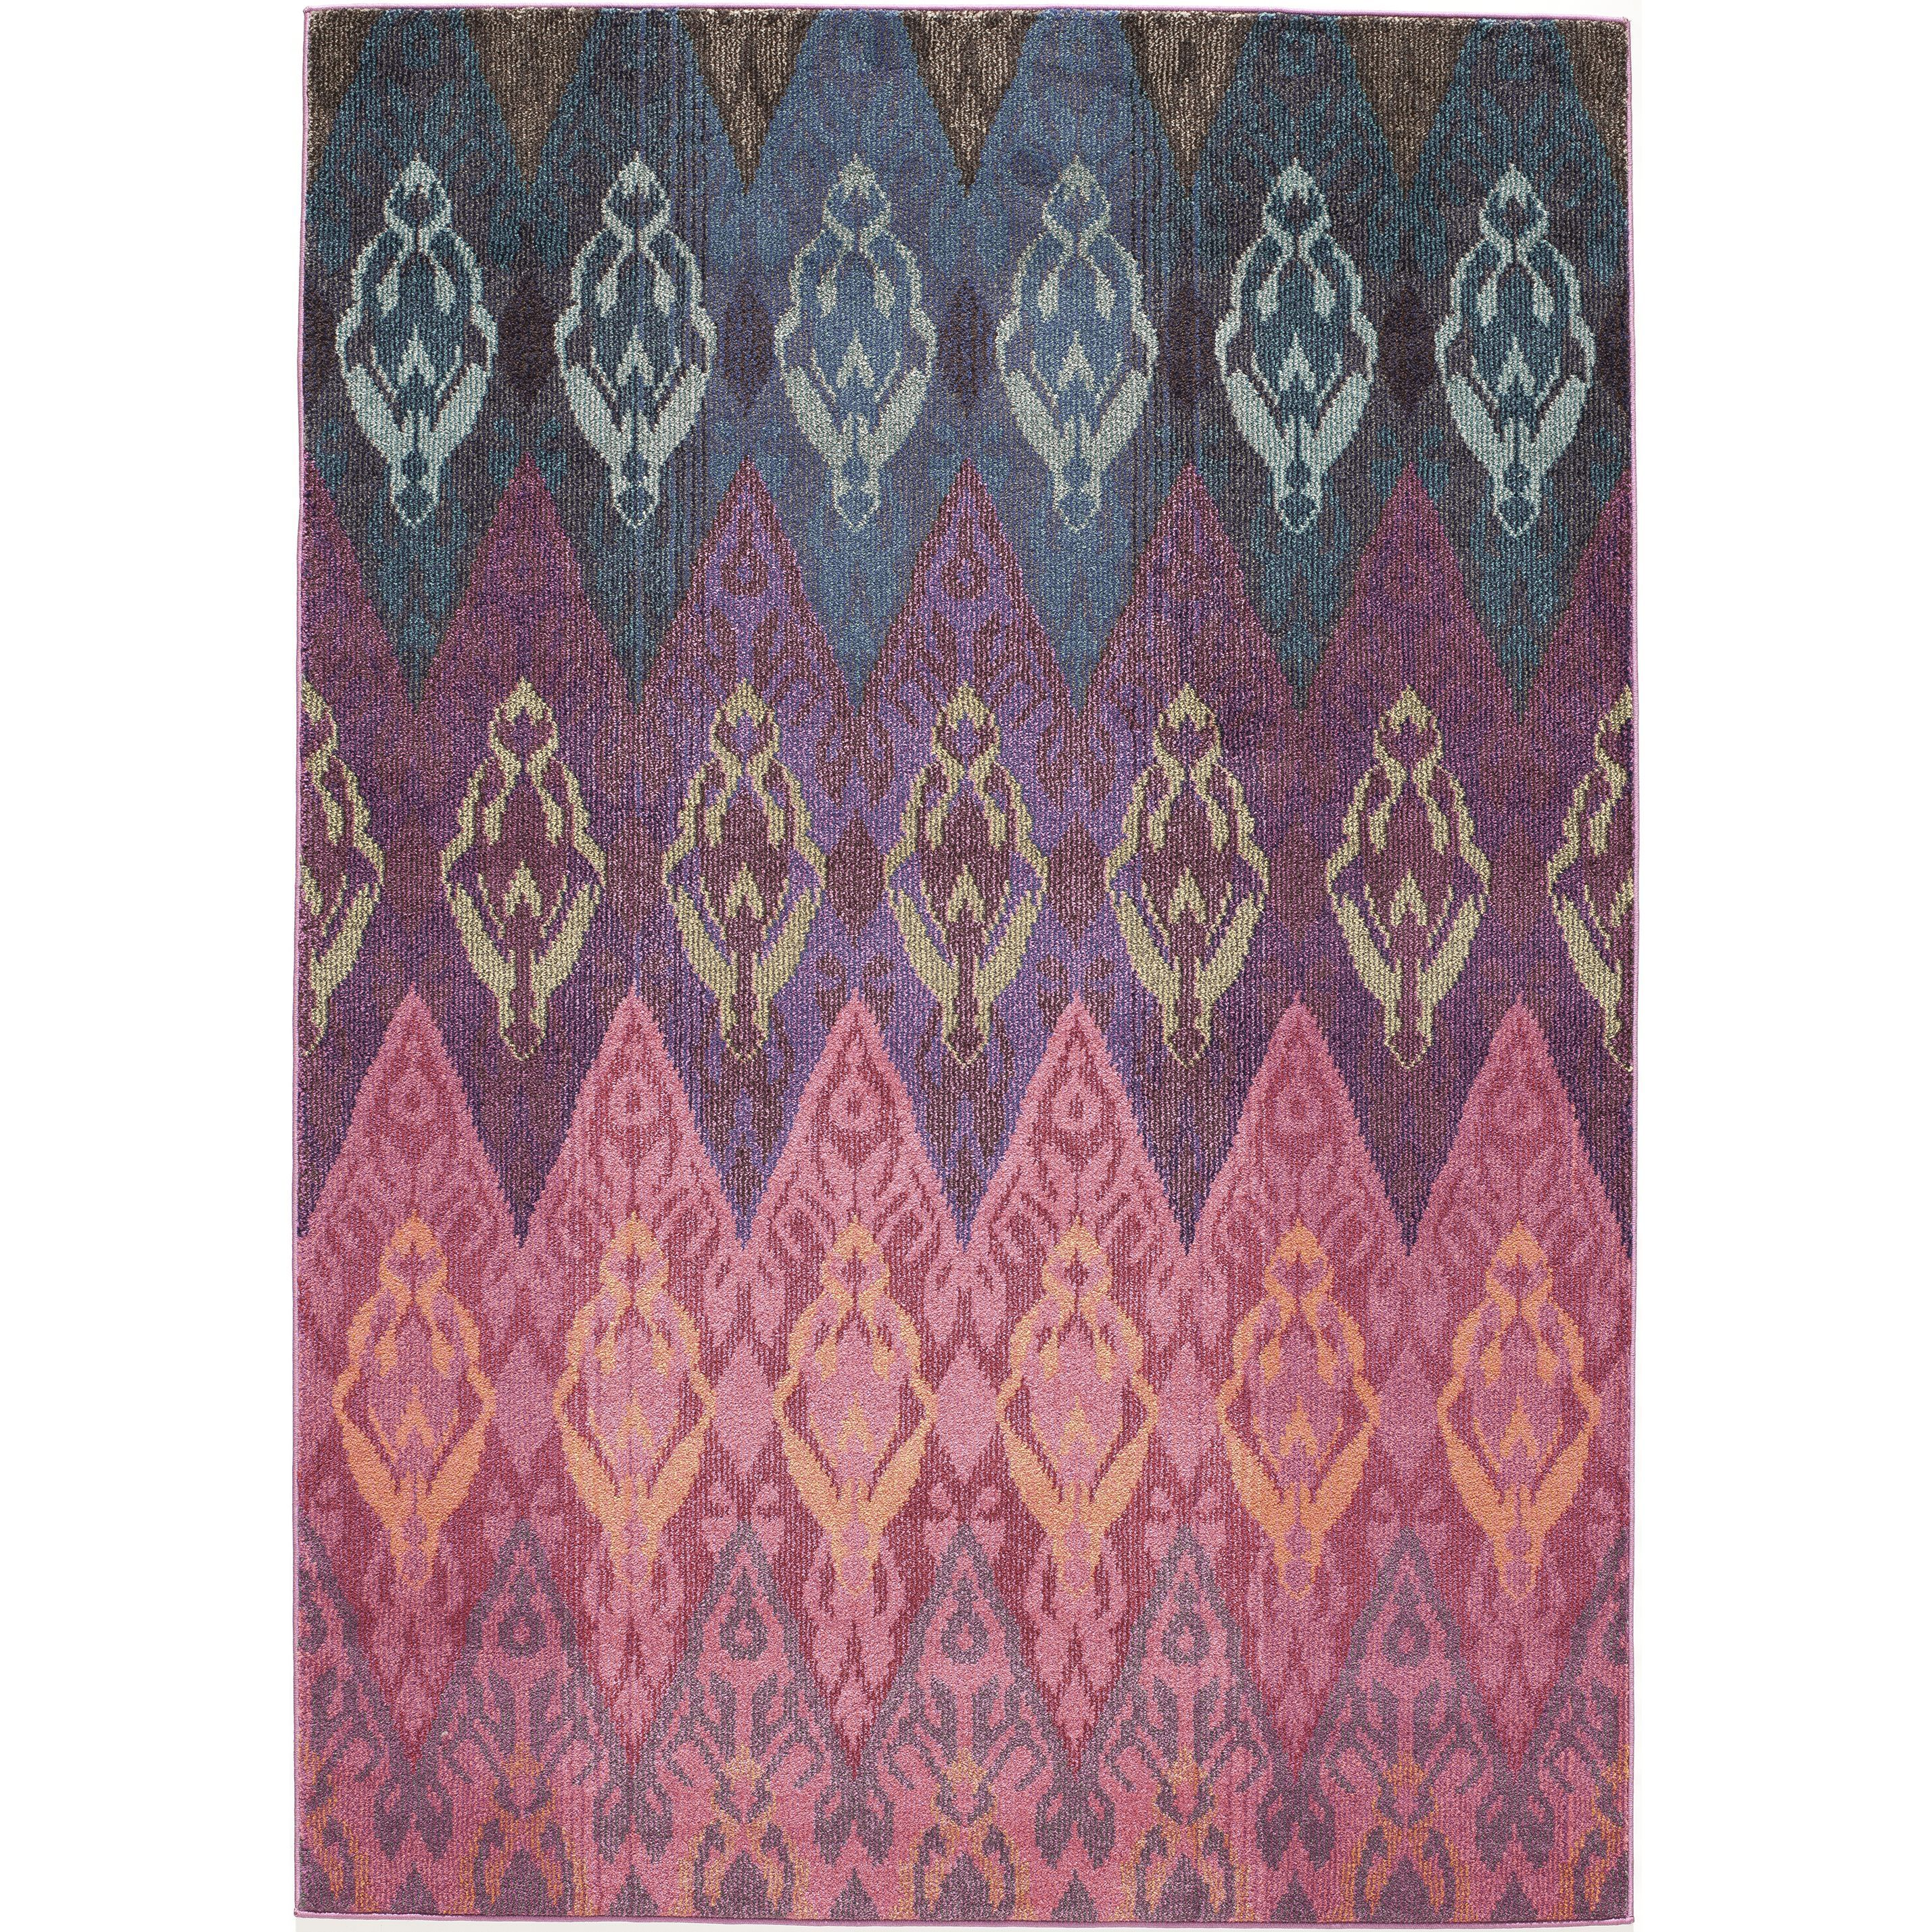 Bring classic style into your home with the Casa 8 Multi Rug. Featuring a beautiful Ikat pattern and rich colors, this rug will compliment a variety of decors.